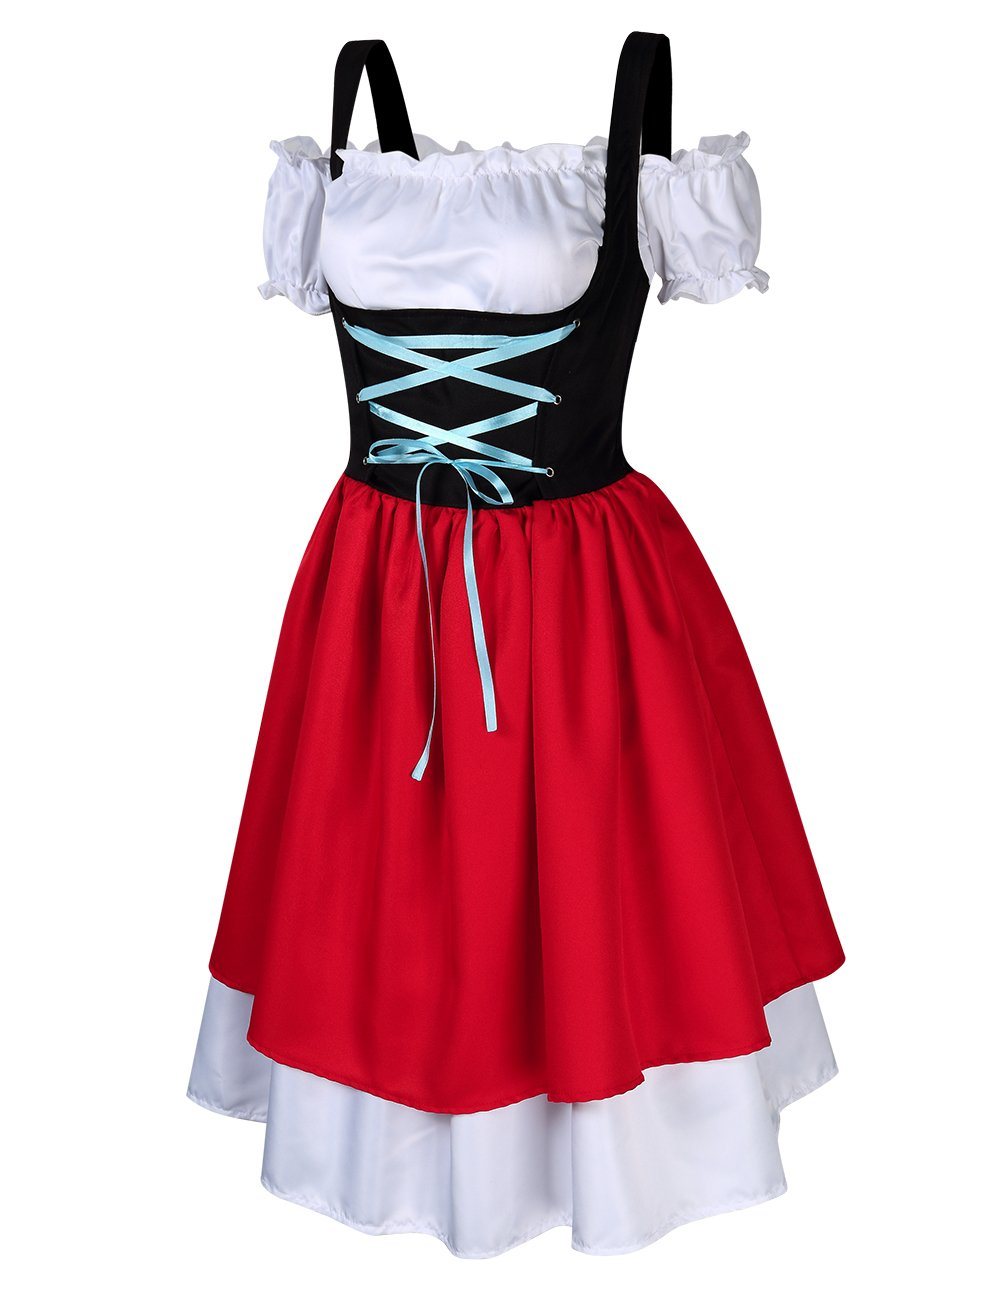 GloryStar Women's 3 Pcs German Dirndl Serving Wench Bavarian Oktoberfest Adult Costumes (S, Red/Green) by GloryStar (Image #4)